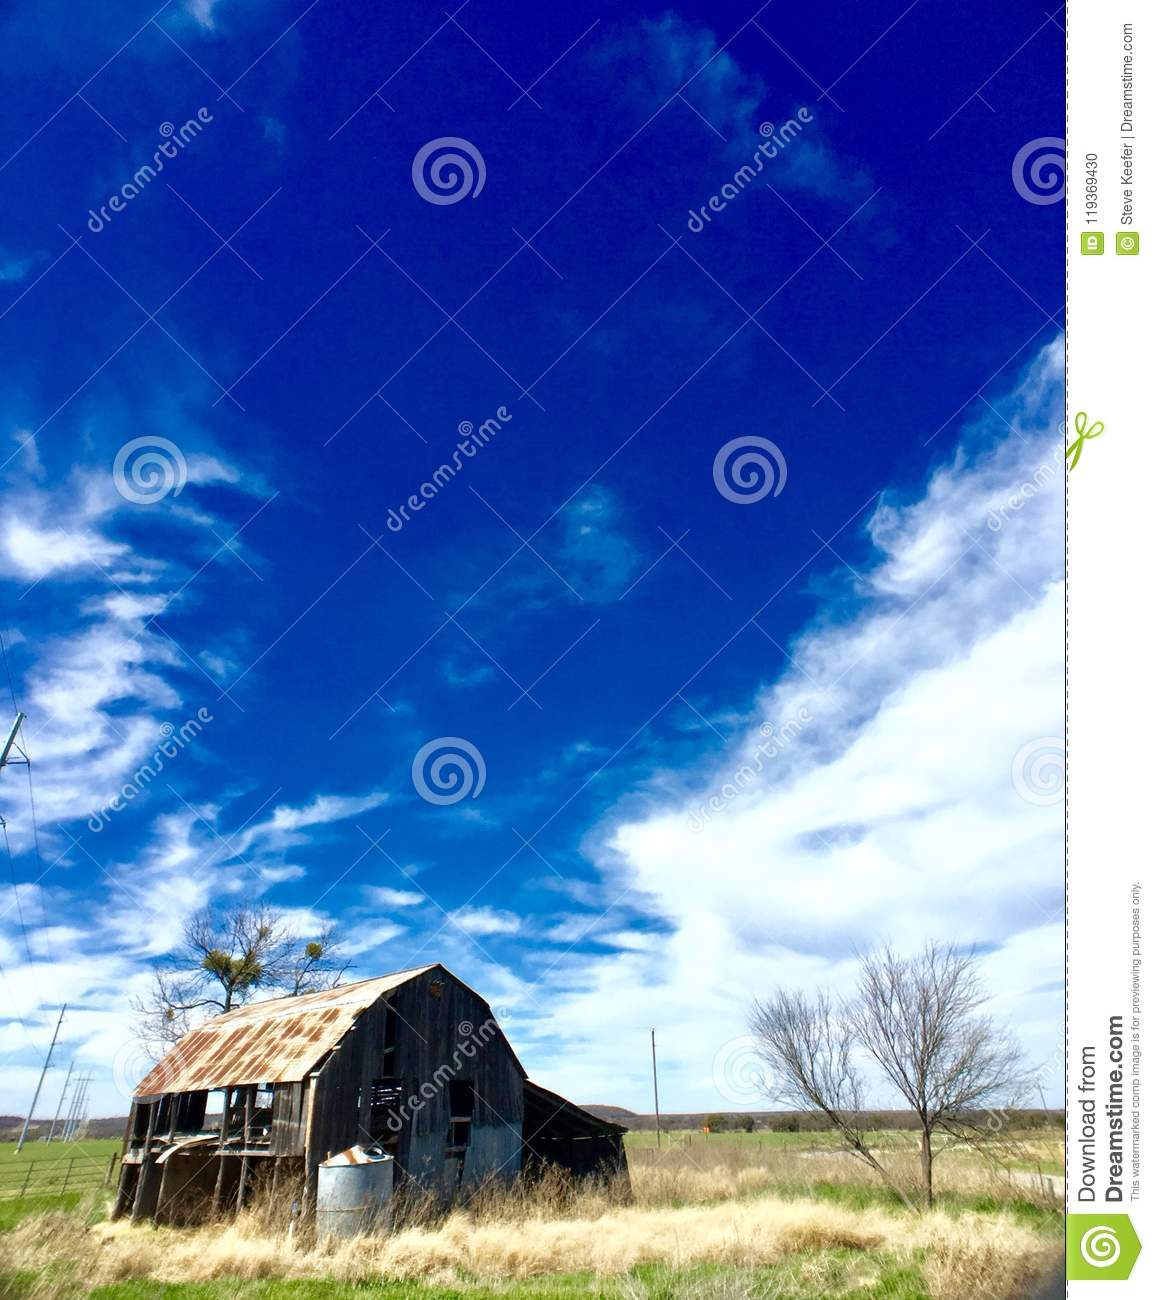 Rustic Building In Texas On An Abandoned Ranch Stock Photo